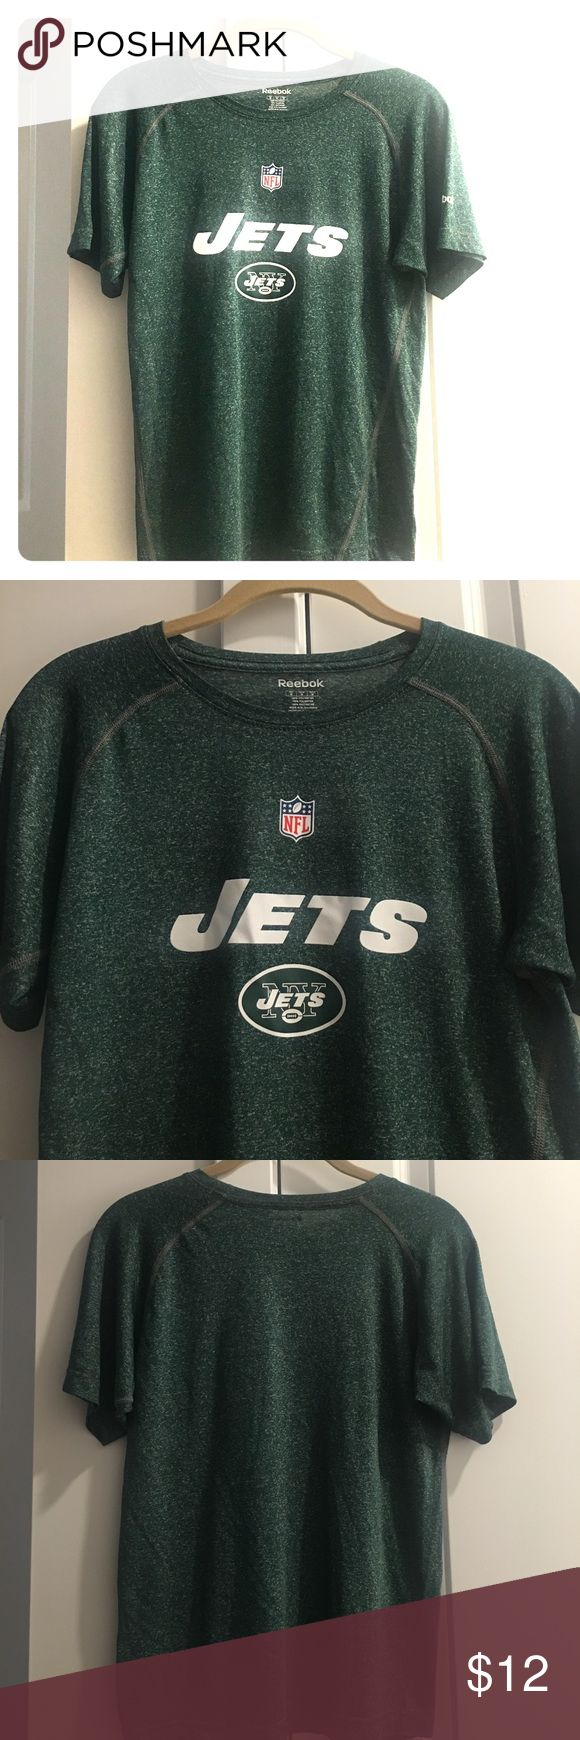 🔽 Sale, Youth, NFL NY JETS Reebok T-shirt Gently used, youth, Medium, NFL NY JETS Reebok T-shirt. 100% Polyester Reebok Shirts & Tops Tees - Short Sleeve